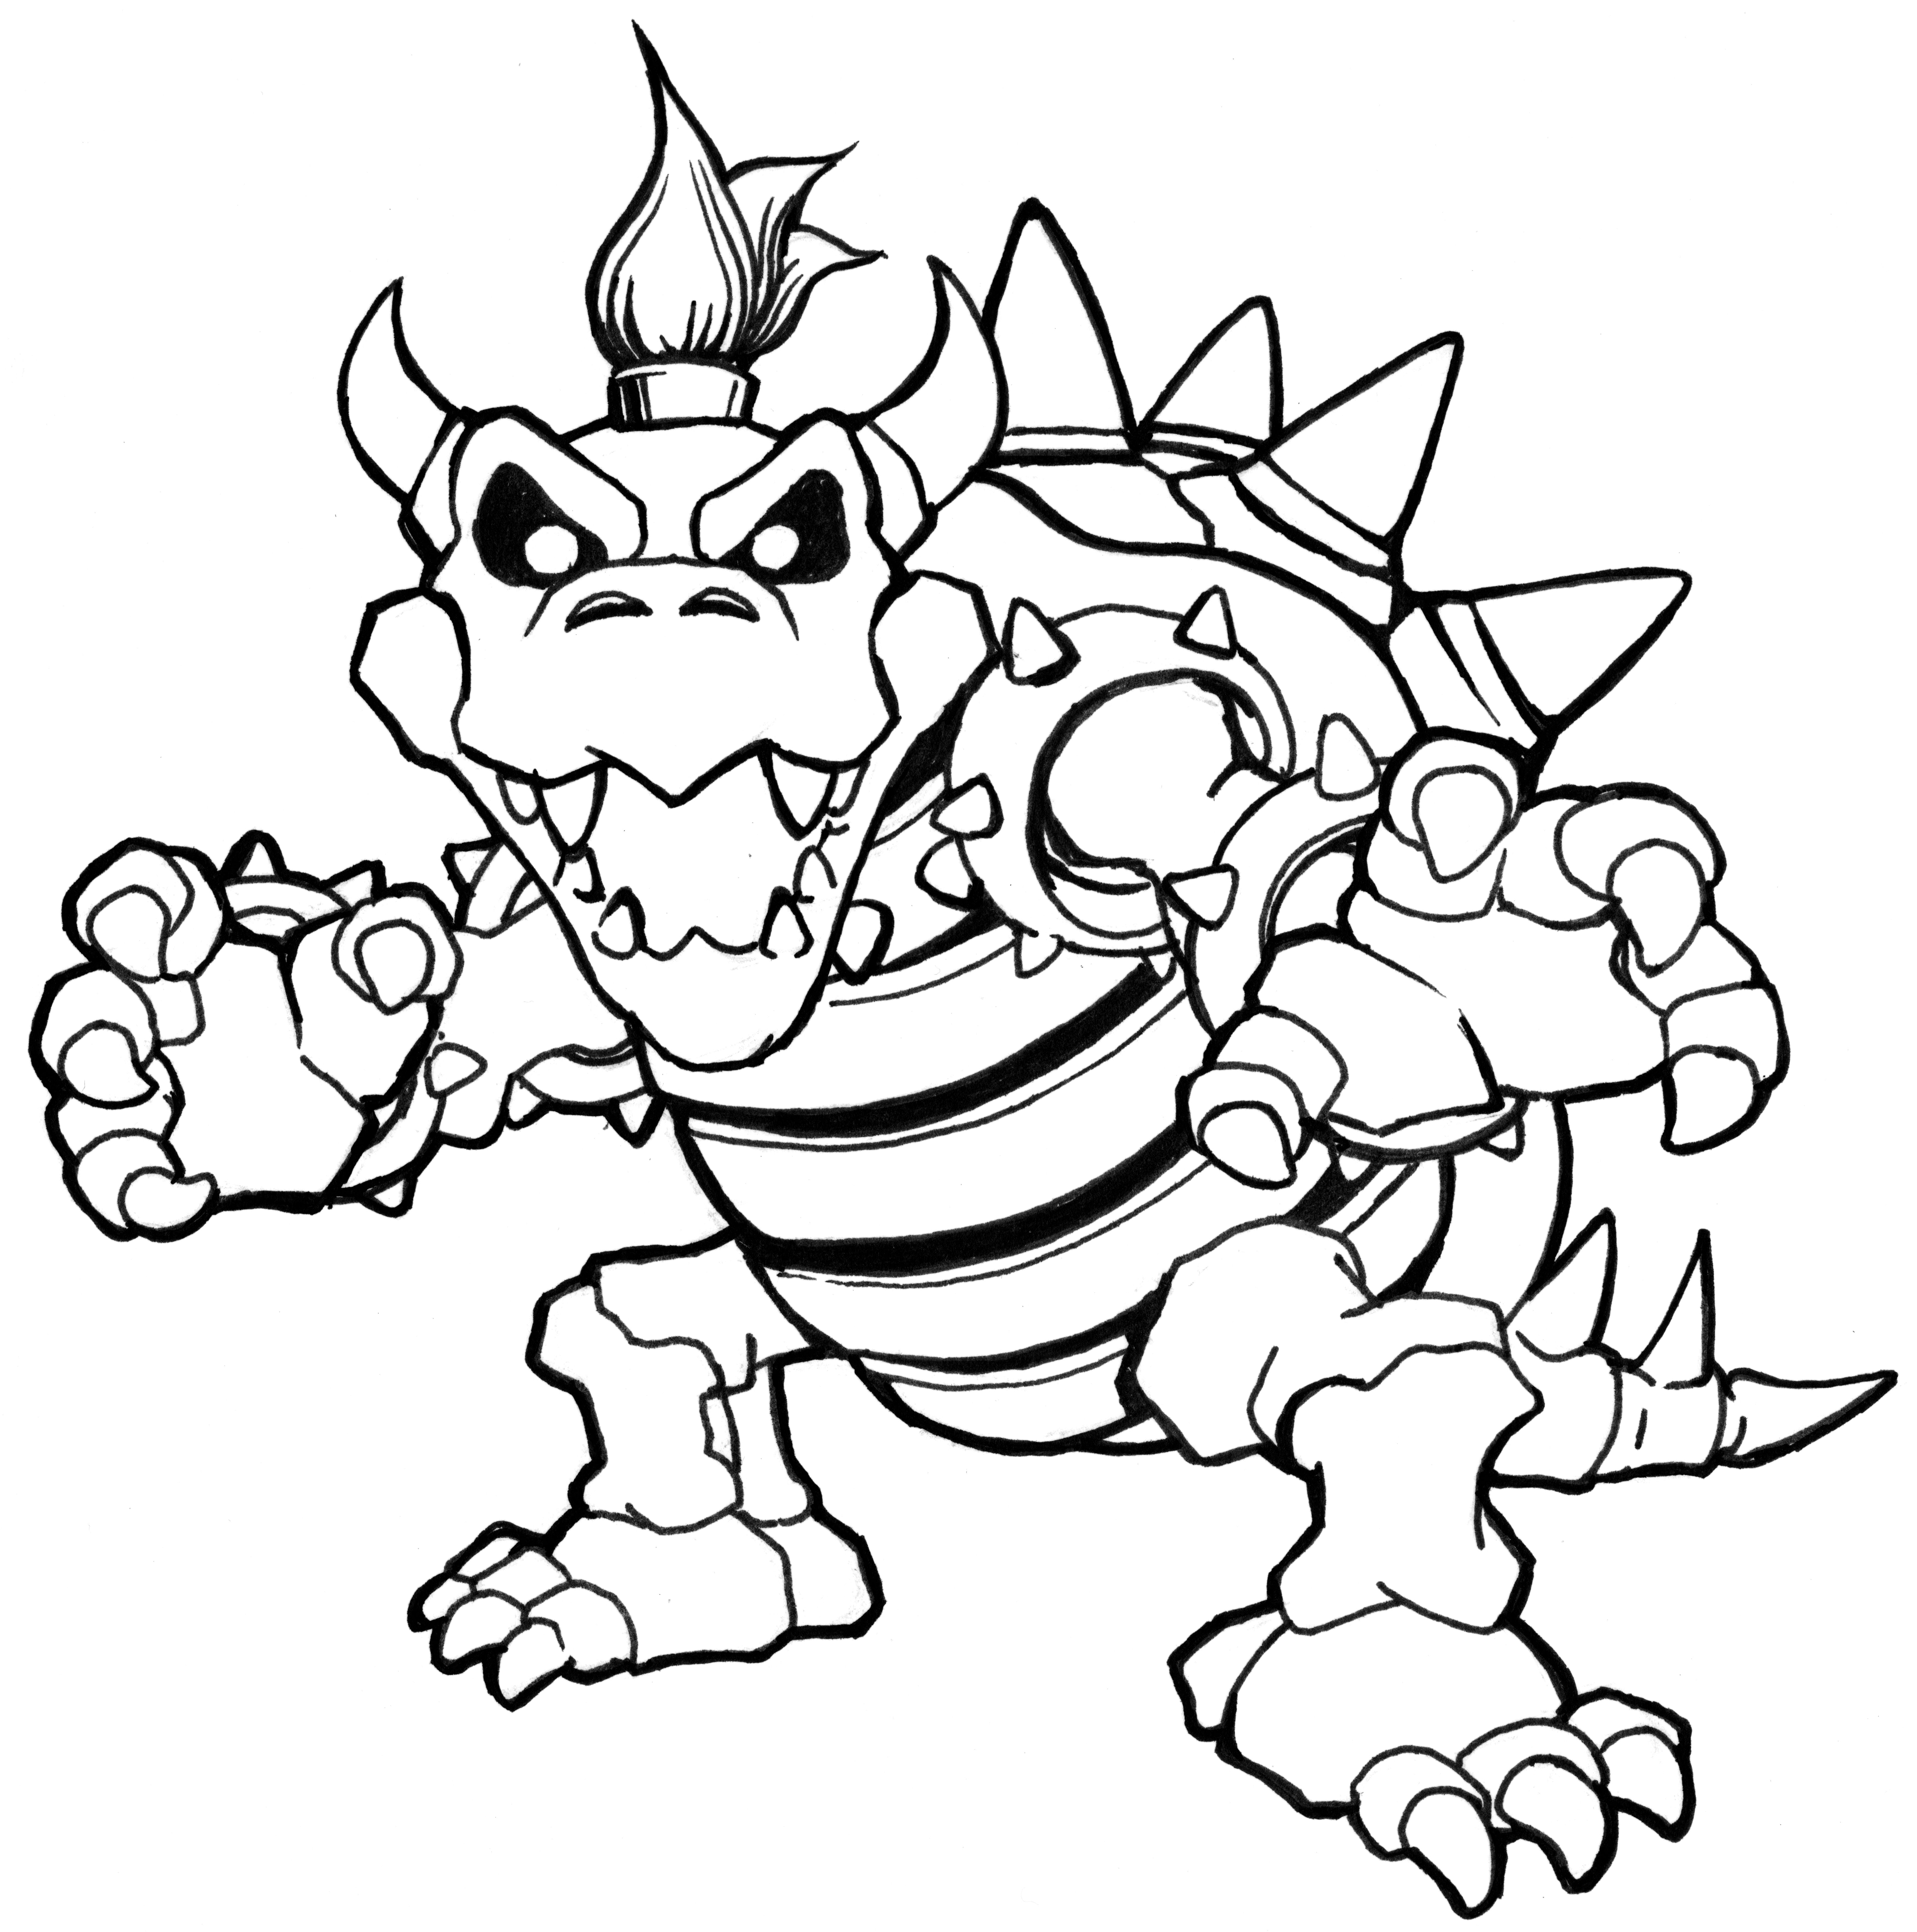 bowser to color free printable bowser coloring pages h m coloring bowser to color